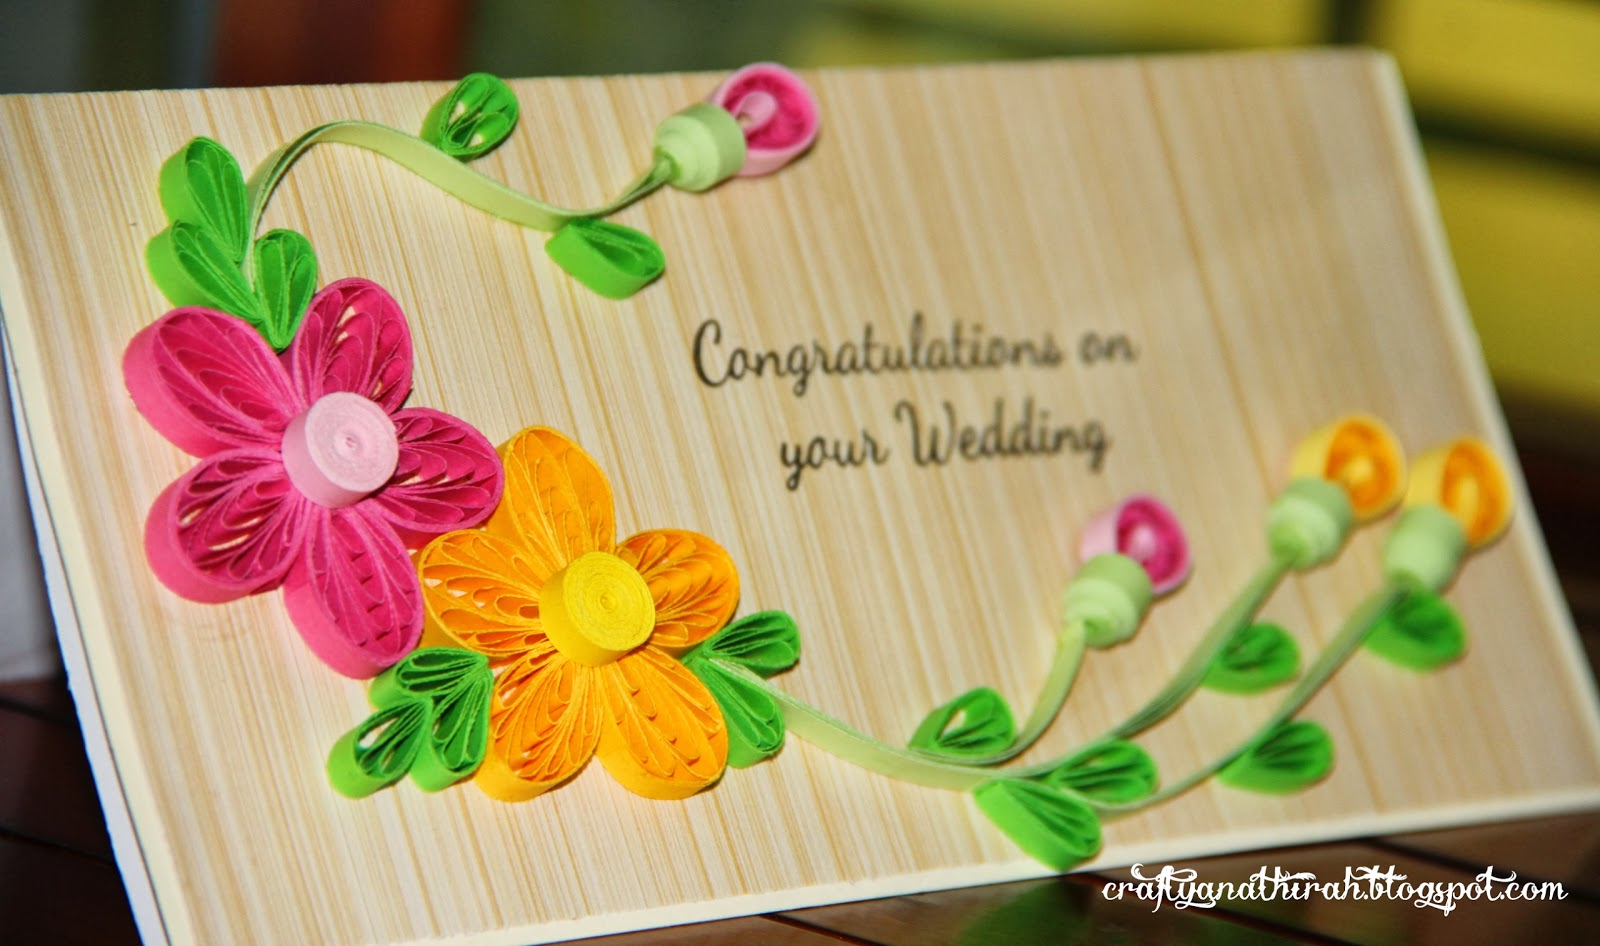 24 delightful wedding wishes to friend congratulations on your wedding greeting card kristyandbryce Choice Image